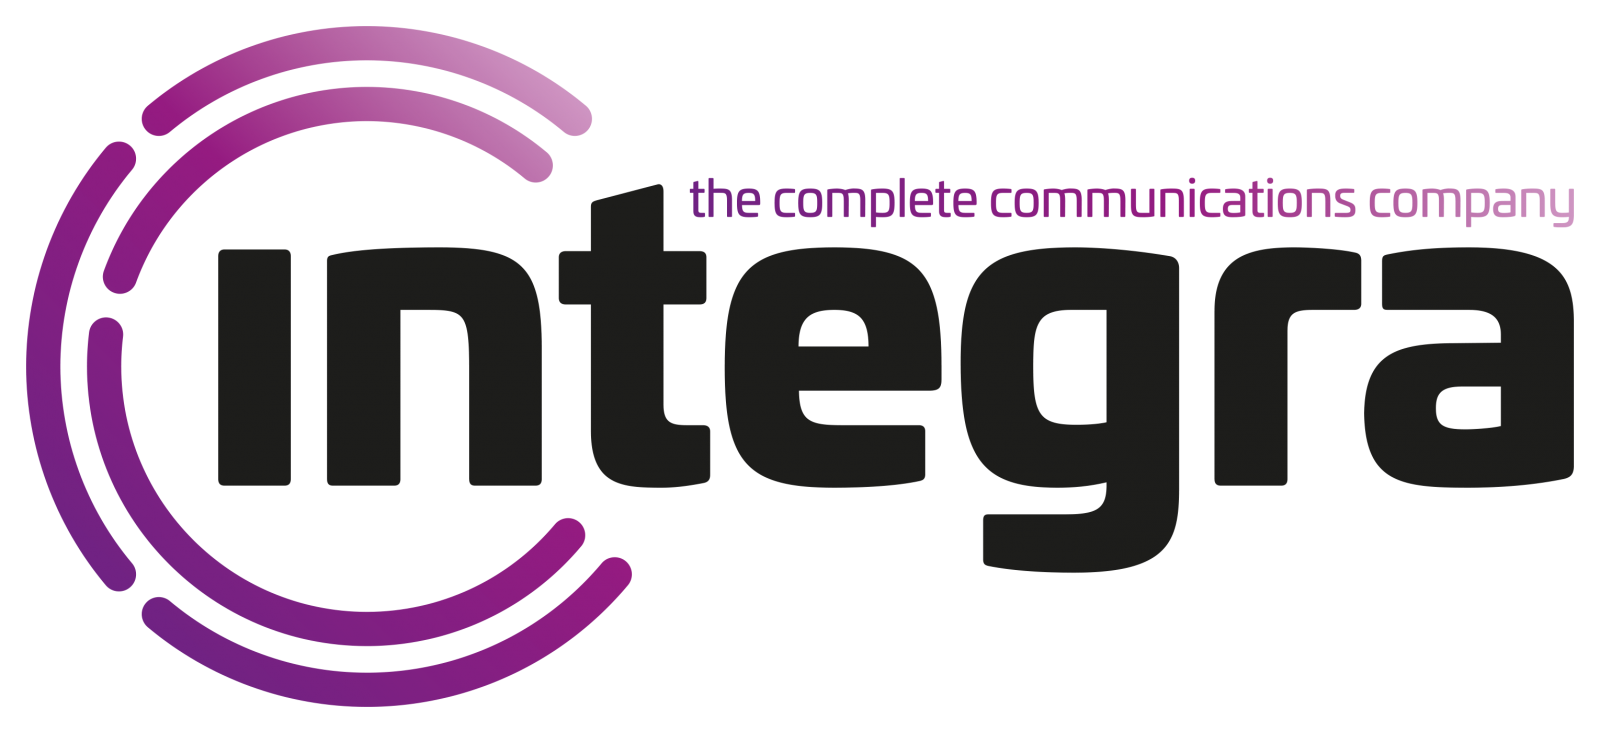 Integra Telecommunications Ltd logo